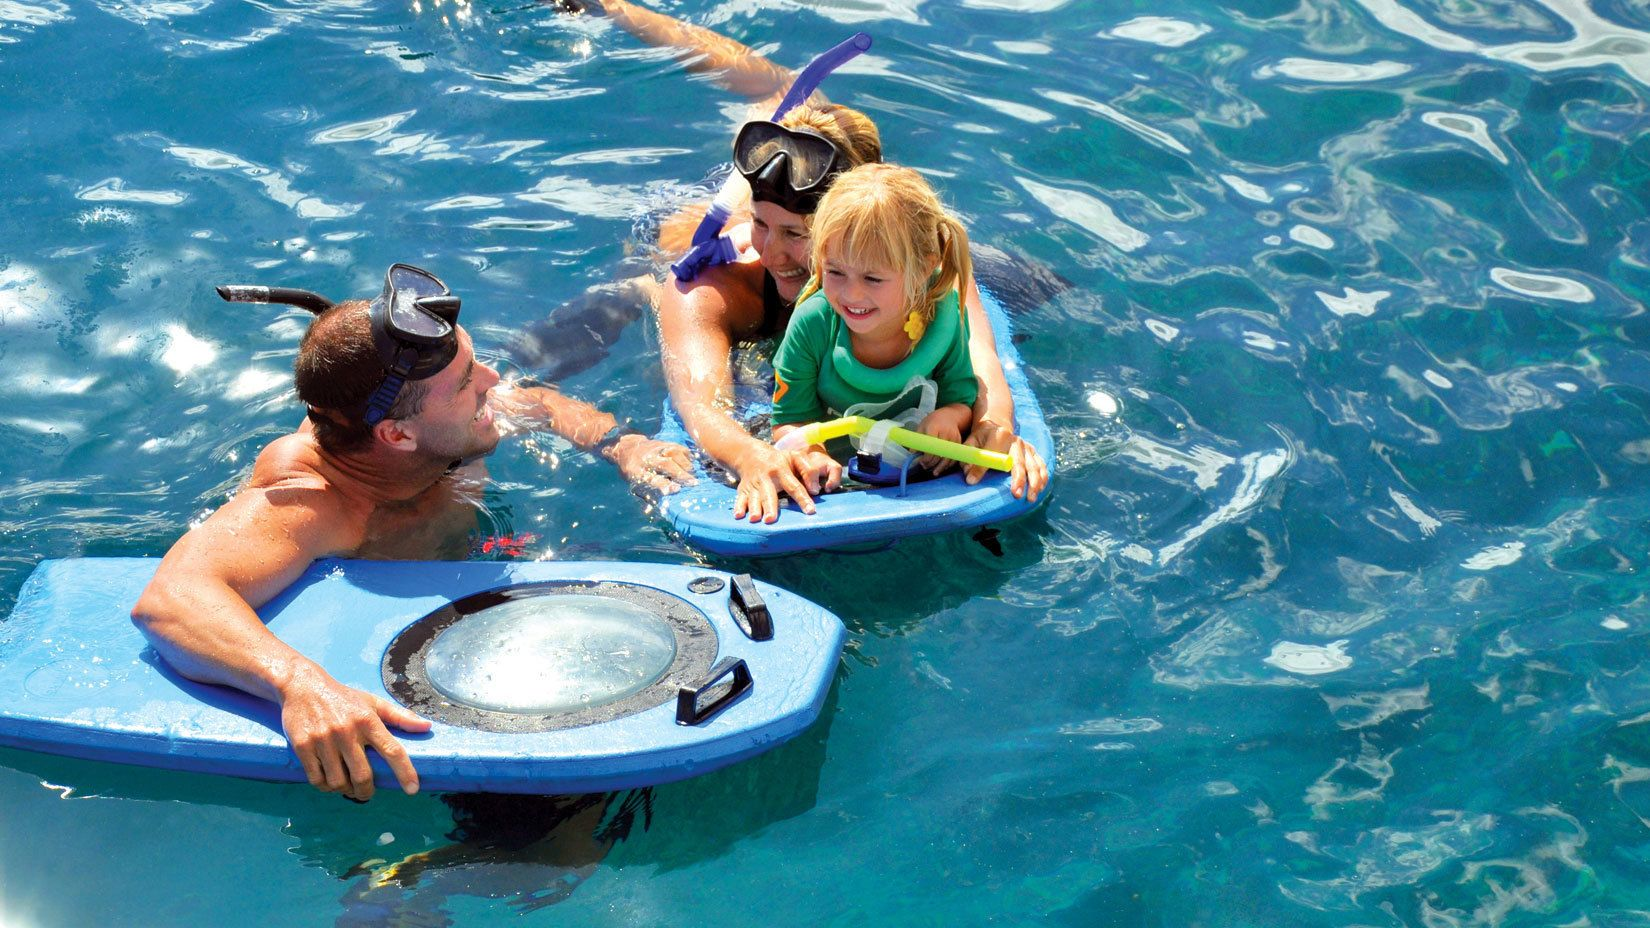 Family with small child snorkeling near Maui